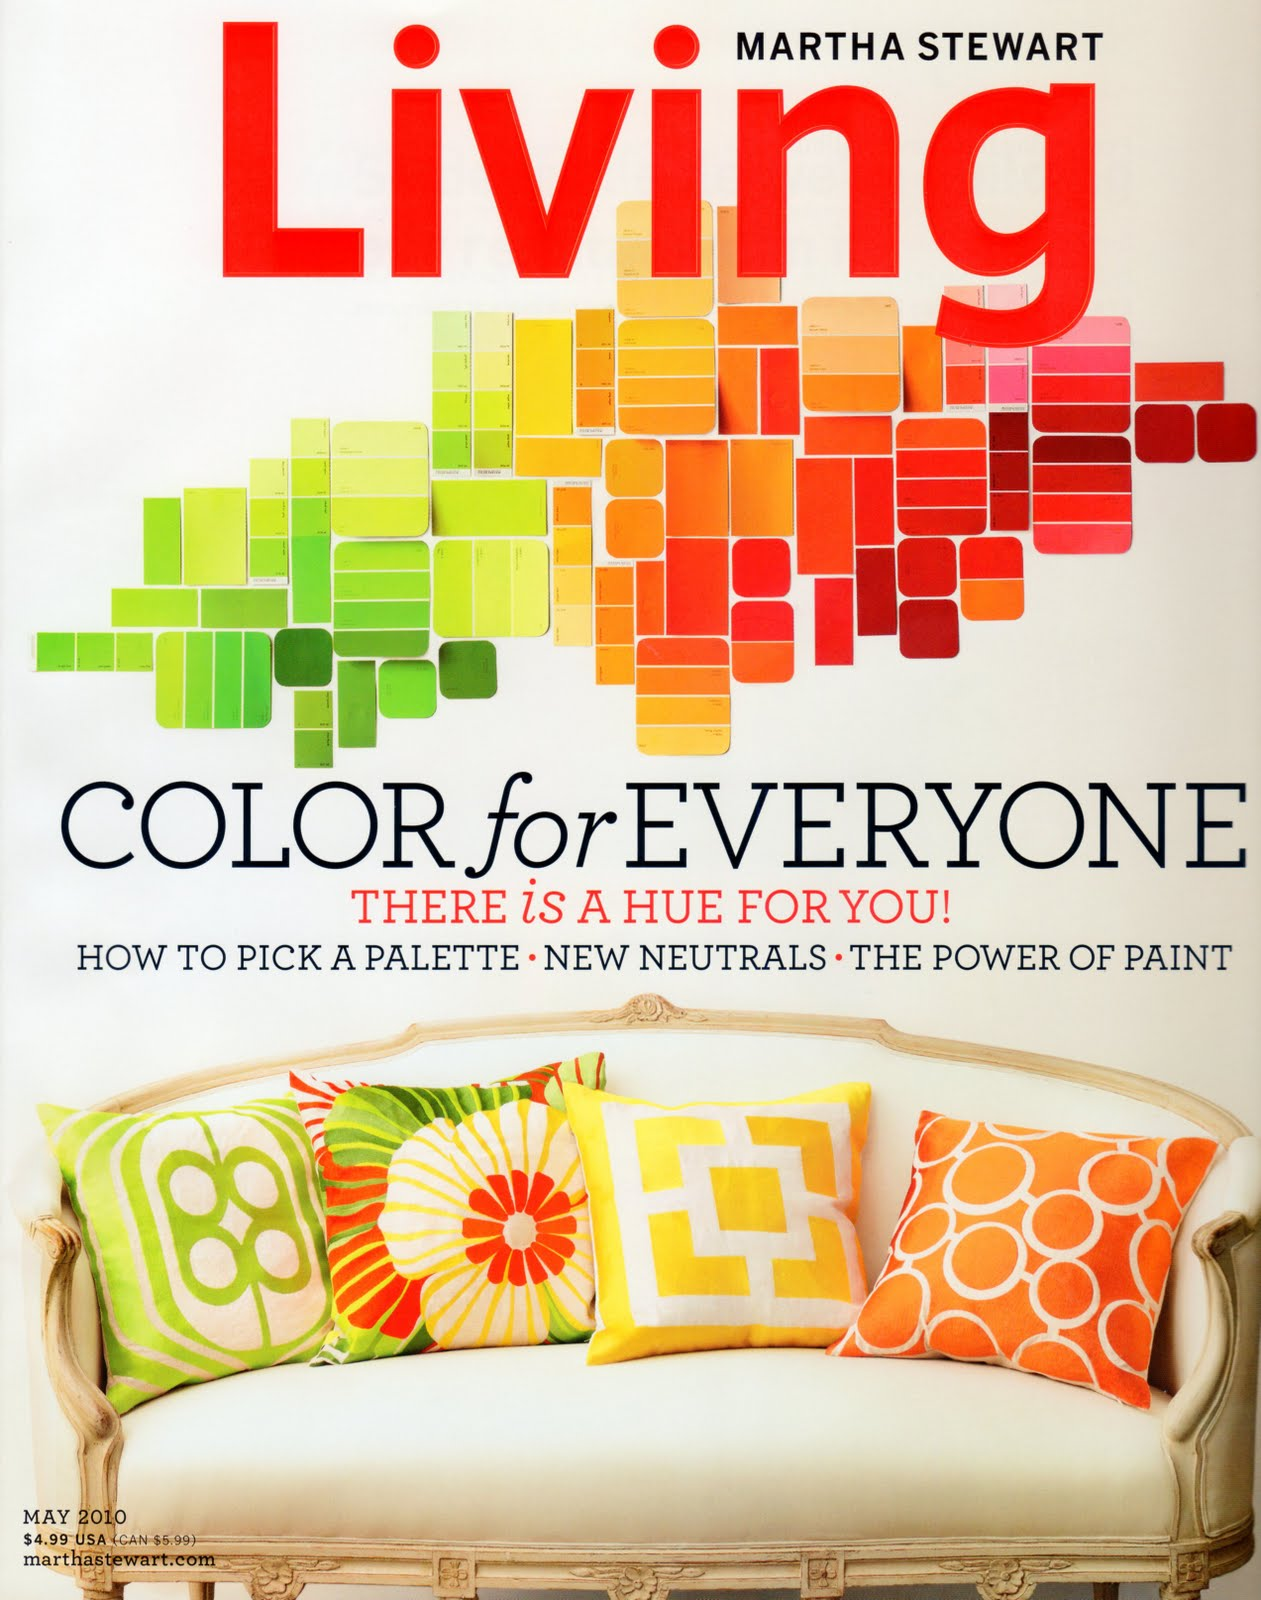 House blend martha stewart living may 2010 color for everyone Home design and living magazine